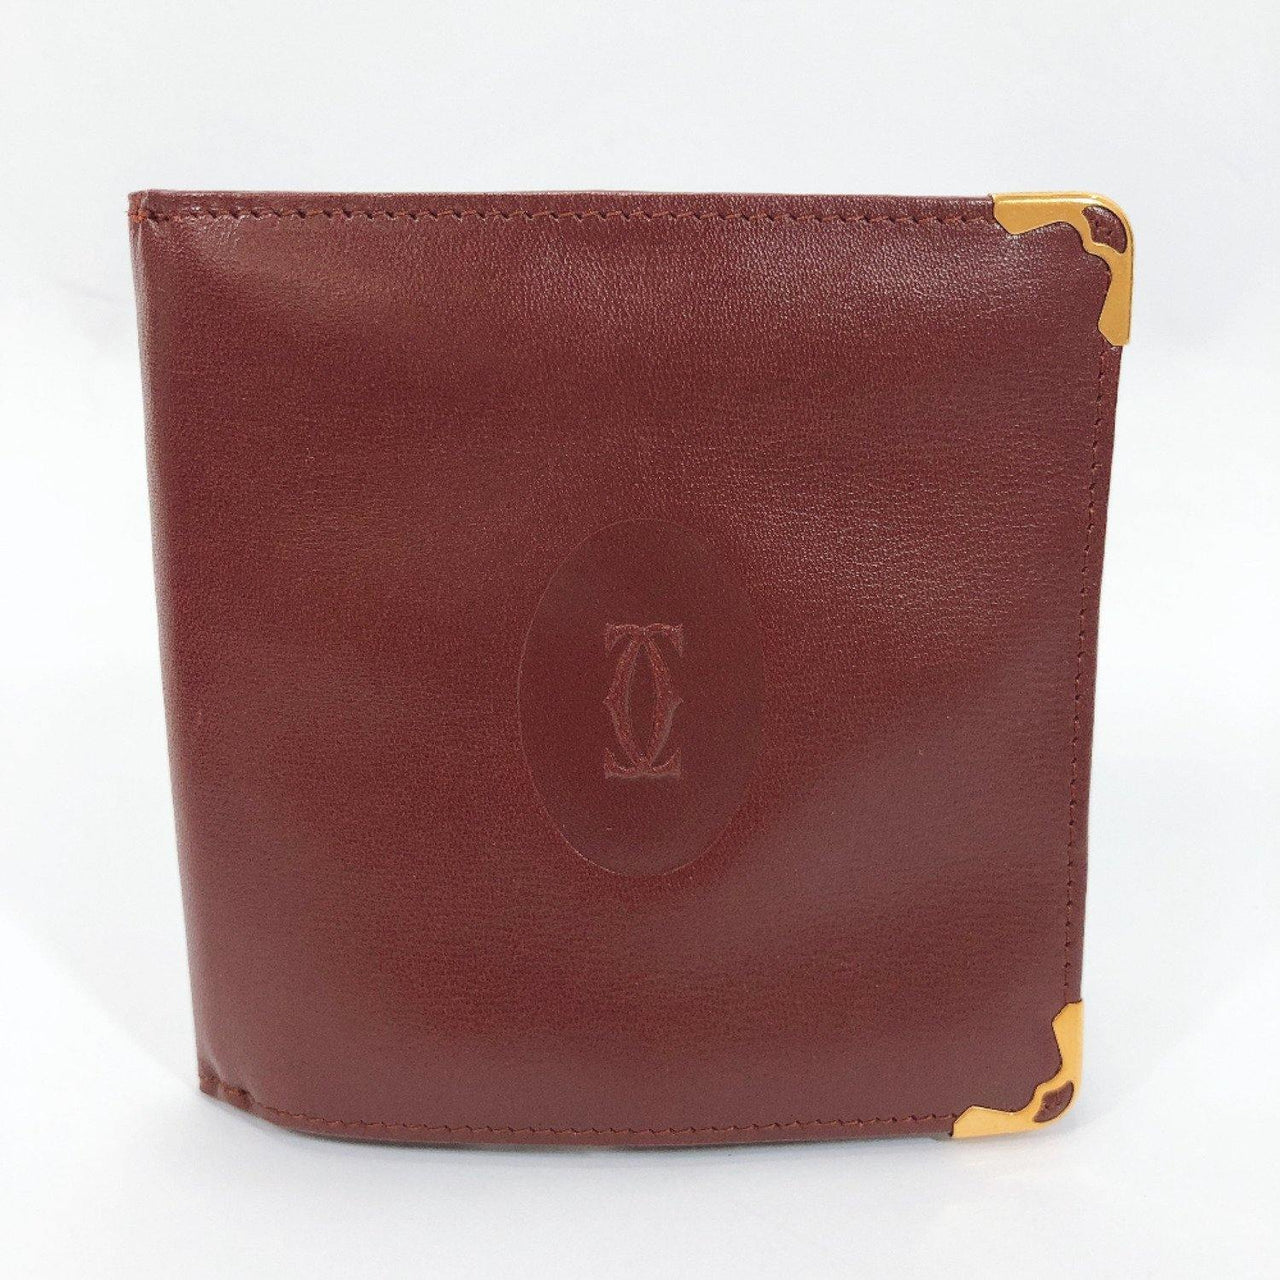 CARTIER wallet Must Line leather wine-red Women Used - JP-BRANDS.com